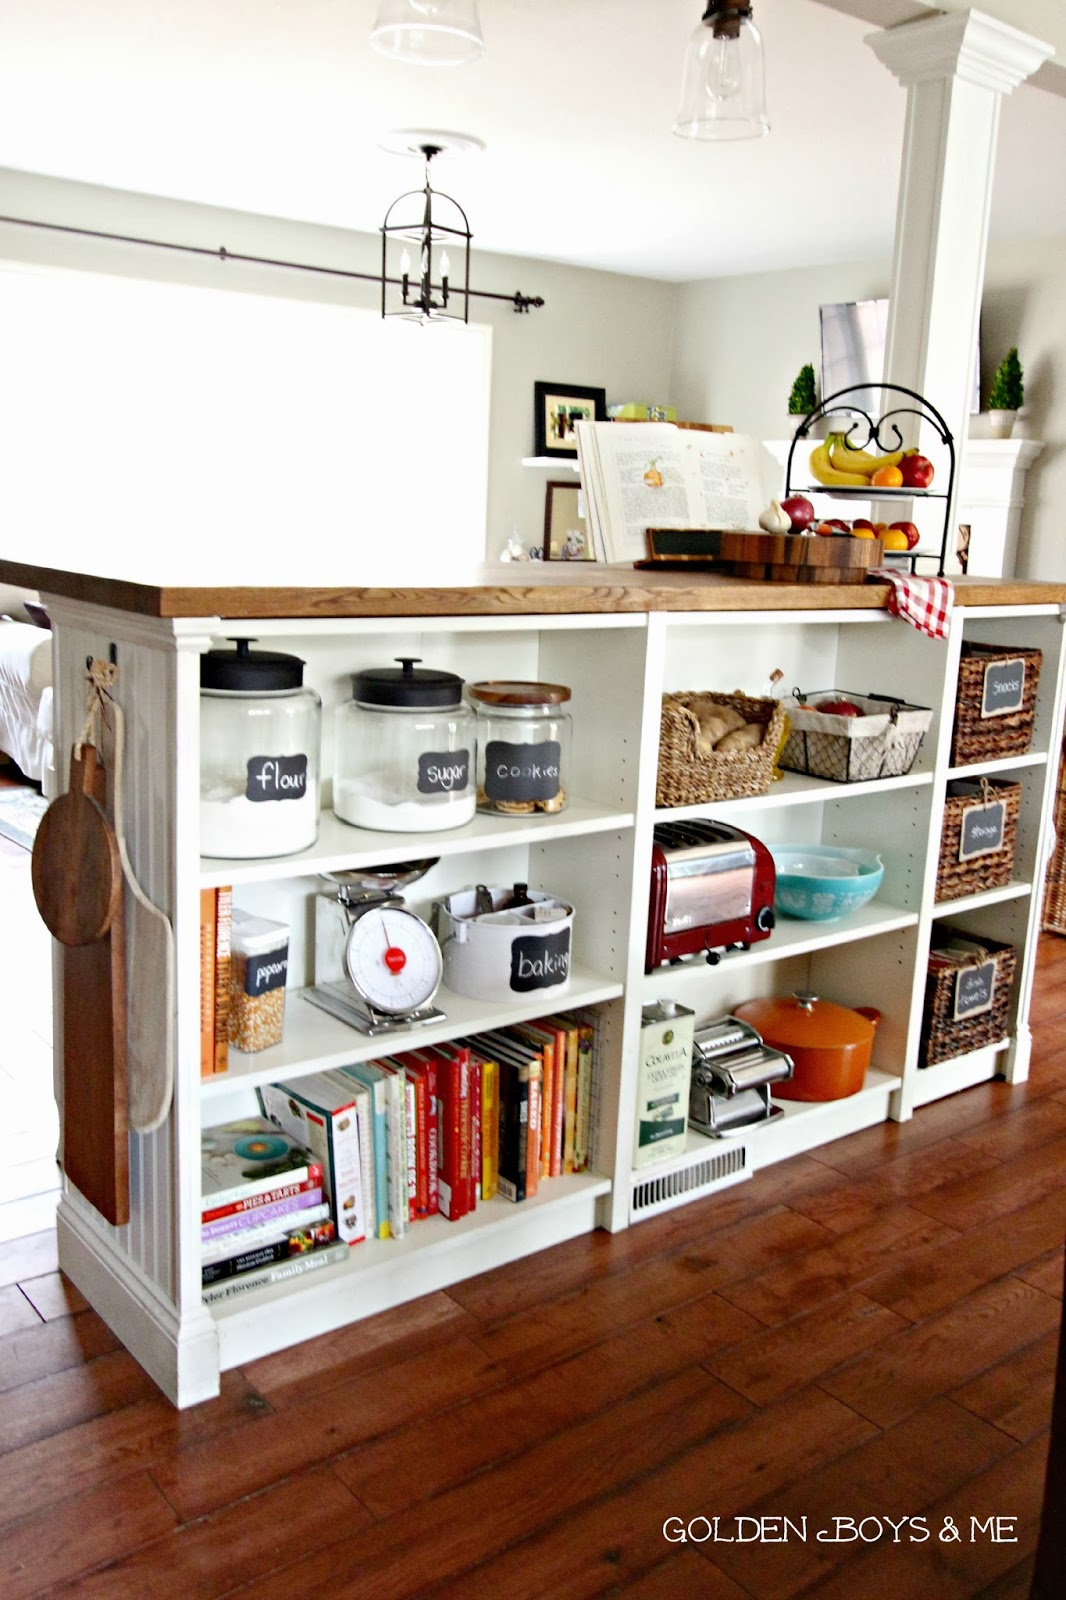 Ikea Hack Billy Bookcase As Pantry Storage: Golden Boys And Me: Bookshelves Turned Kitchen Island Ikea